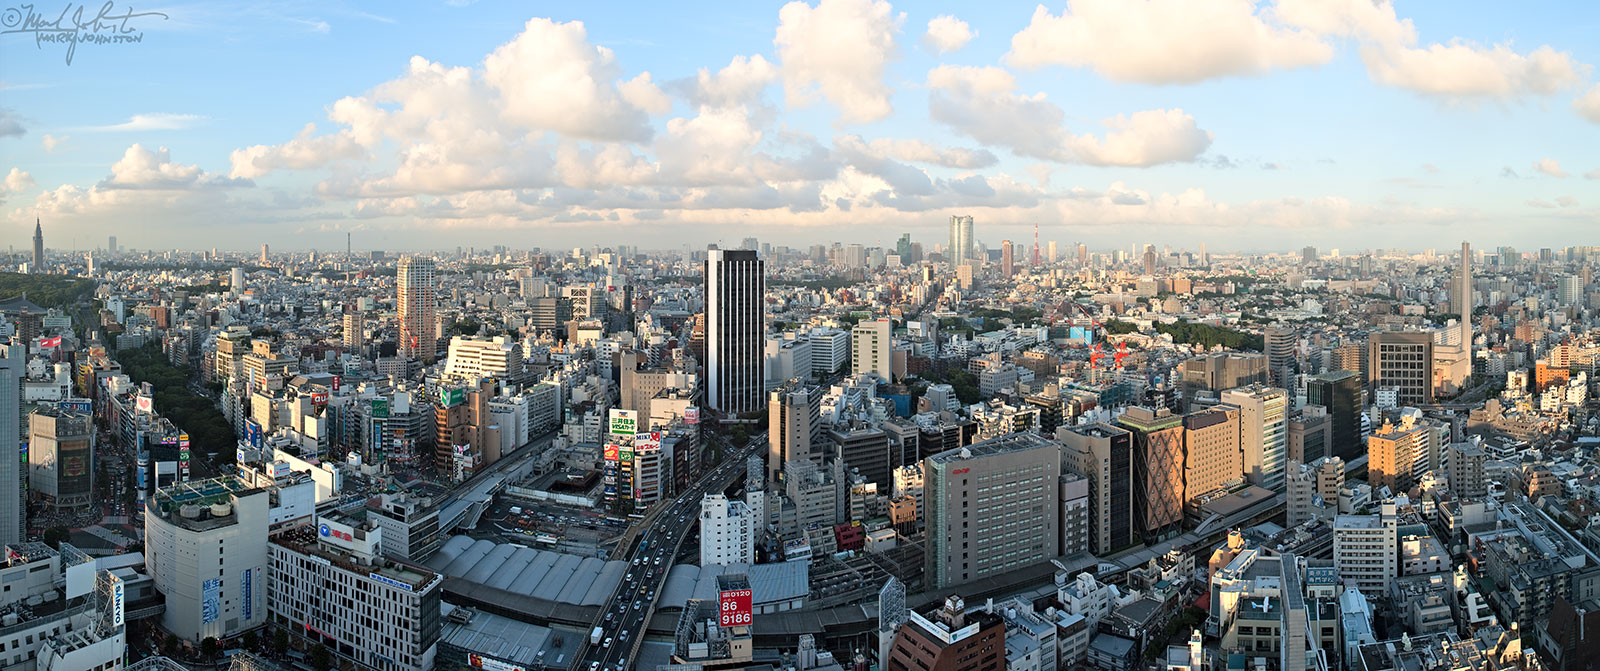 Tokyo, from the Shibuy    a district.